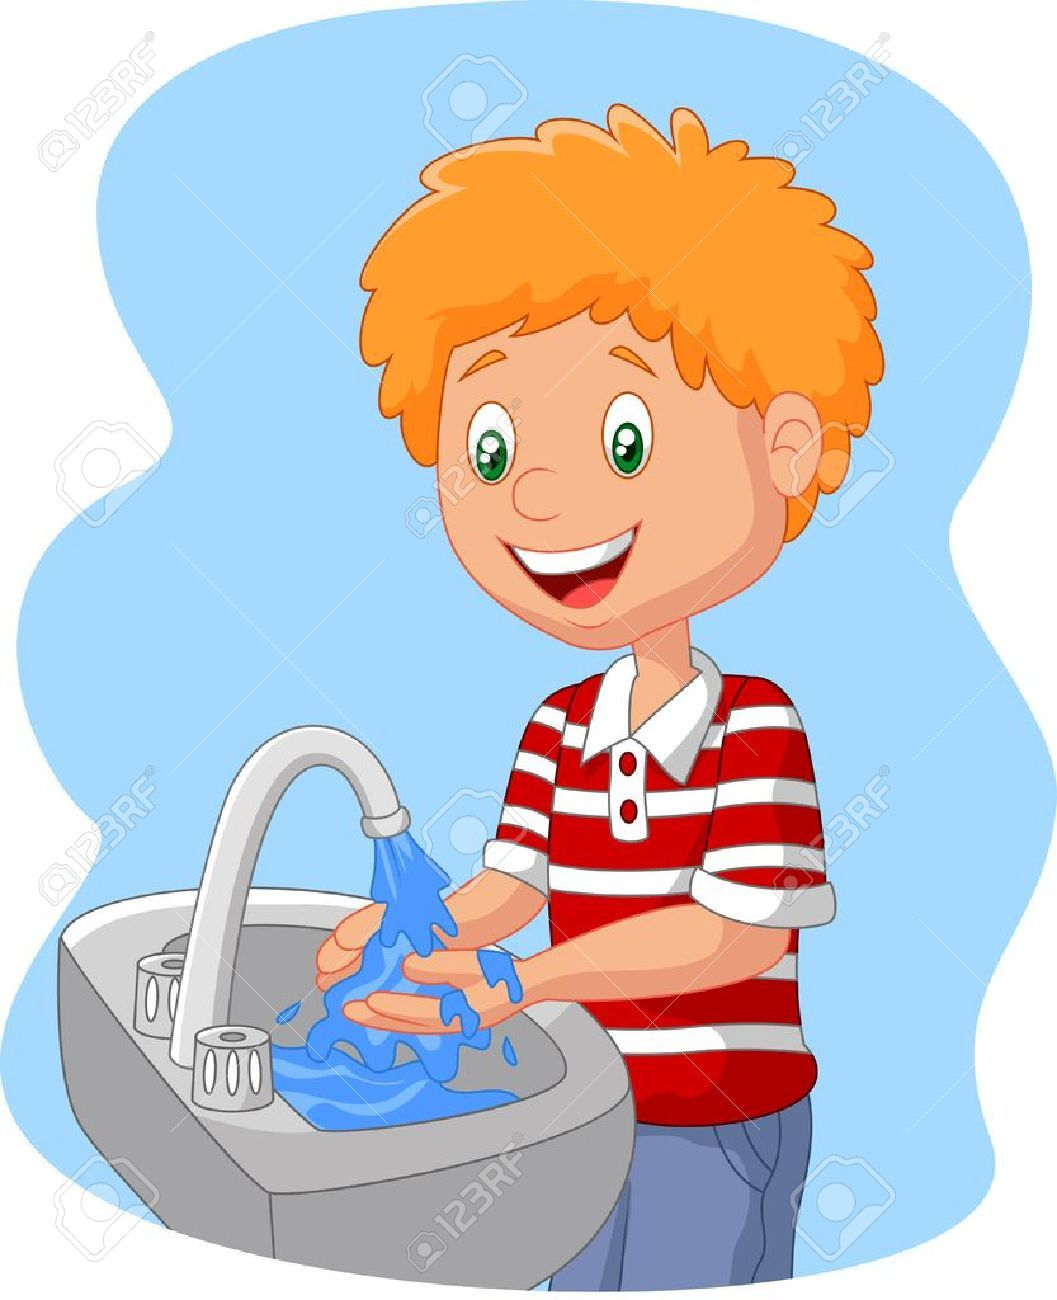 Kids washing hands clipart image black and white Child washing hands clipart 3 » Clipart Portal image black and white